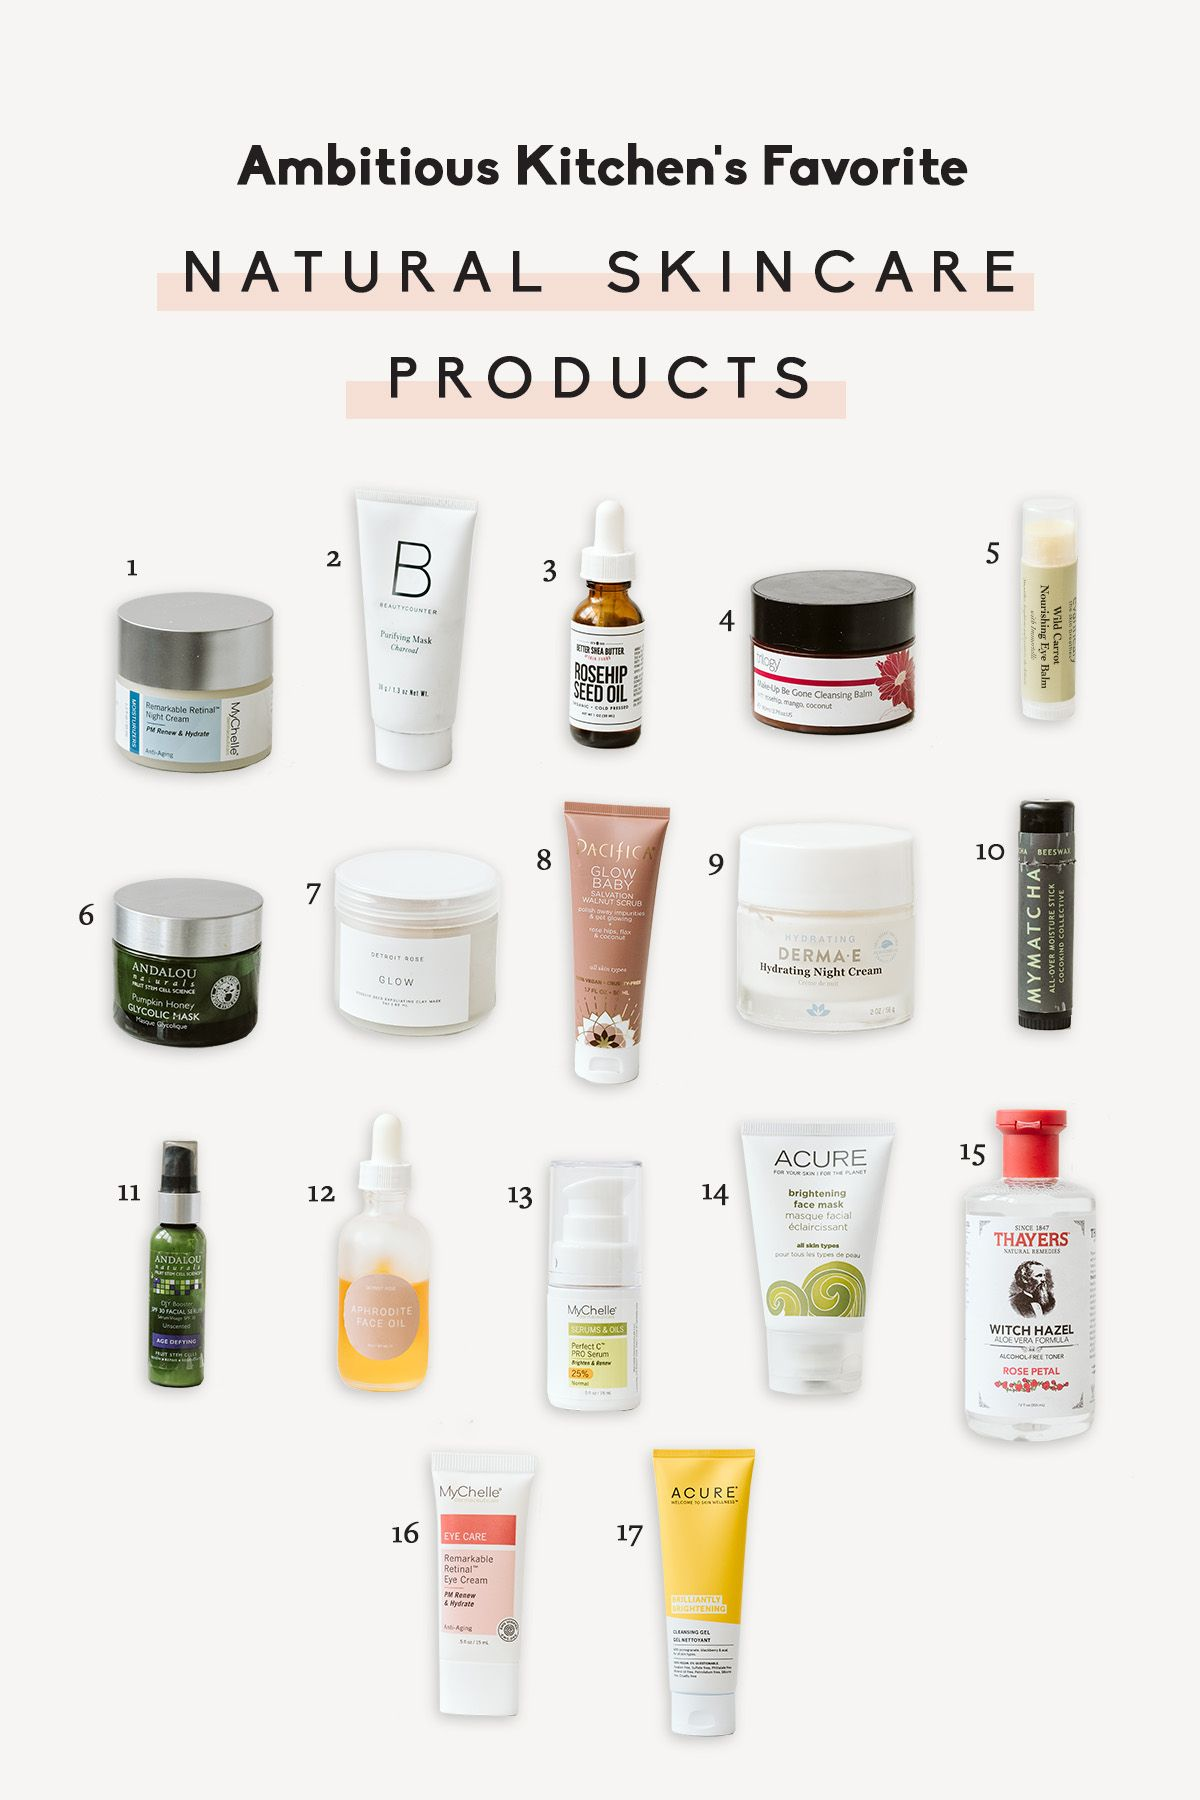 17 Favorite Natural Skincare Products A Video Of My Morning